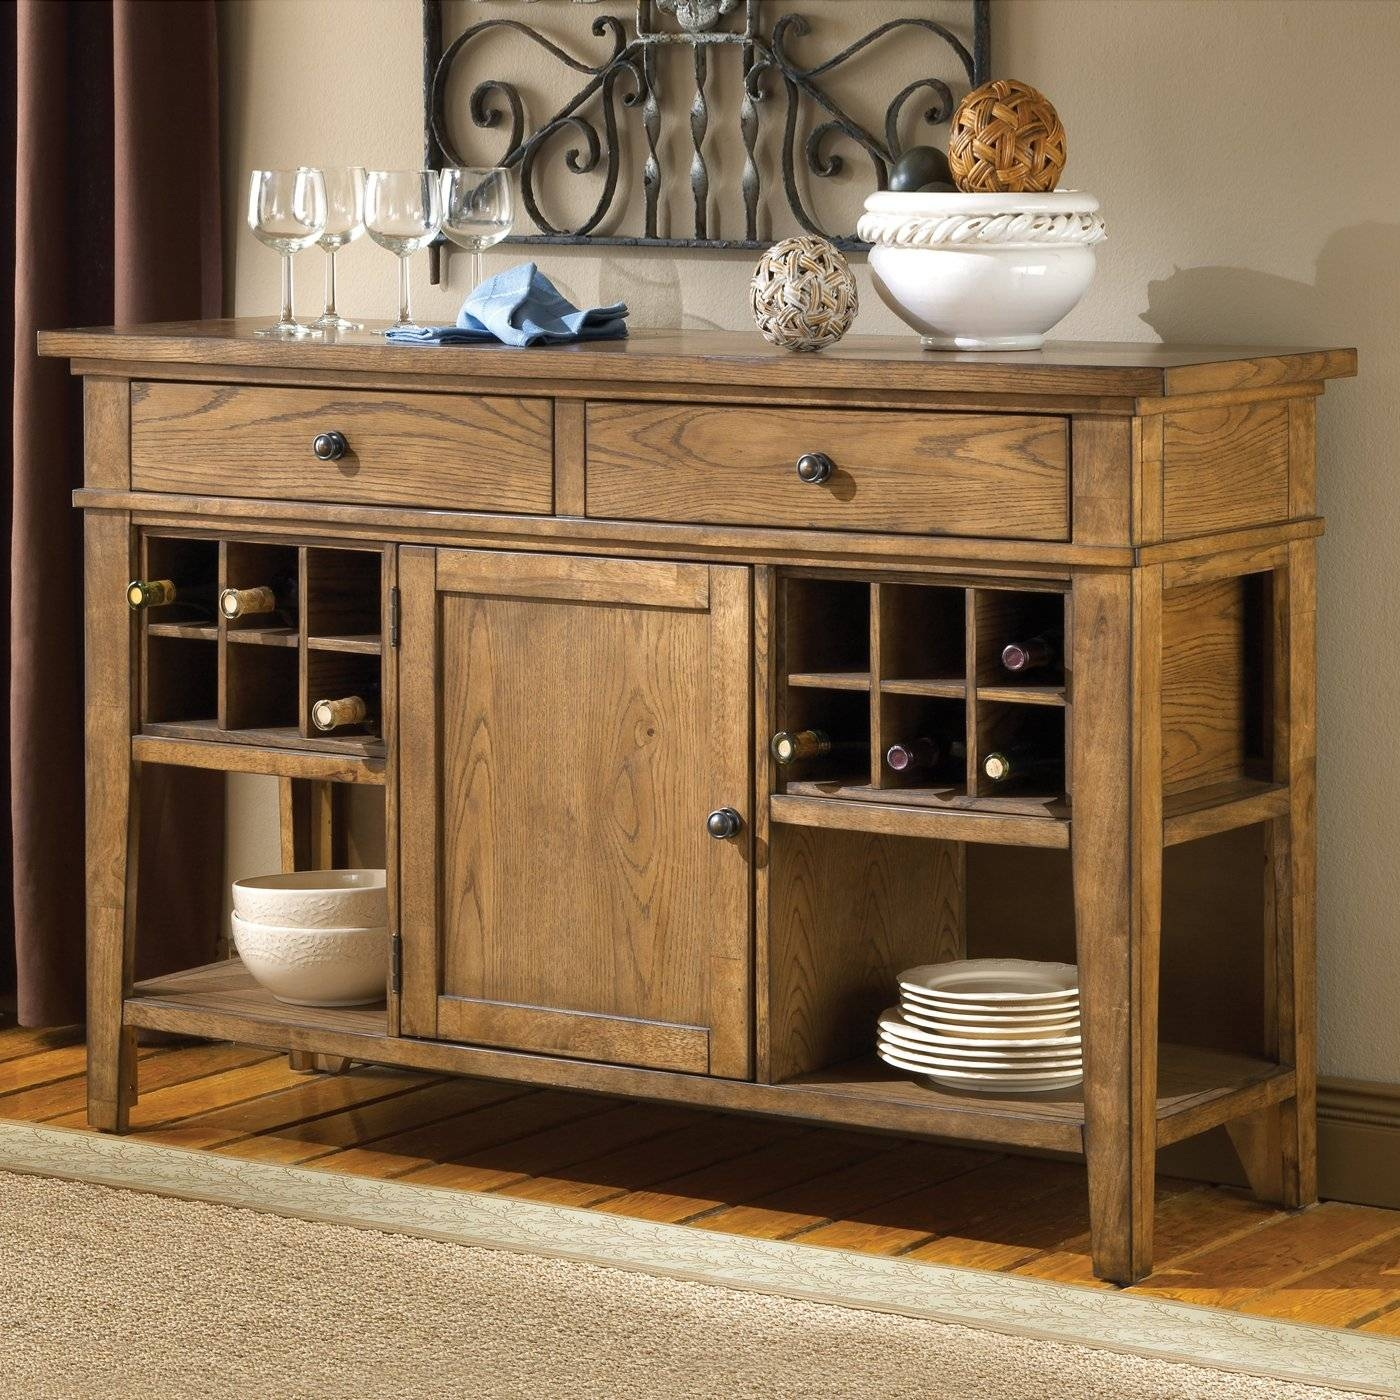 Sideboards. Inspiring Buffet With Wine Storage: Buffet-With-Wine regarding White Sideboards With Wine Rack (Image 23 of 30)